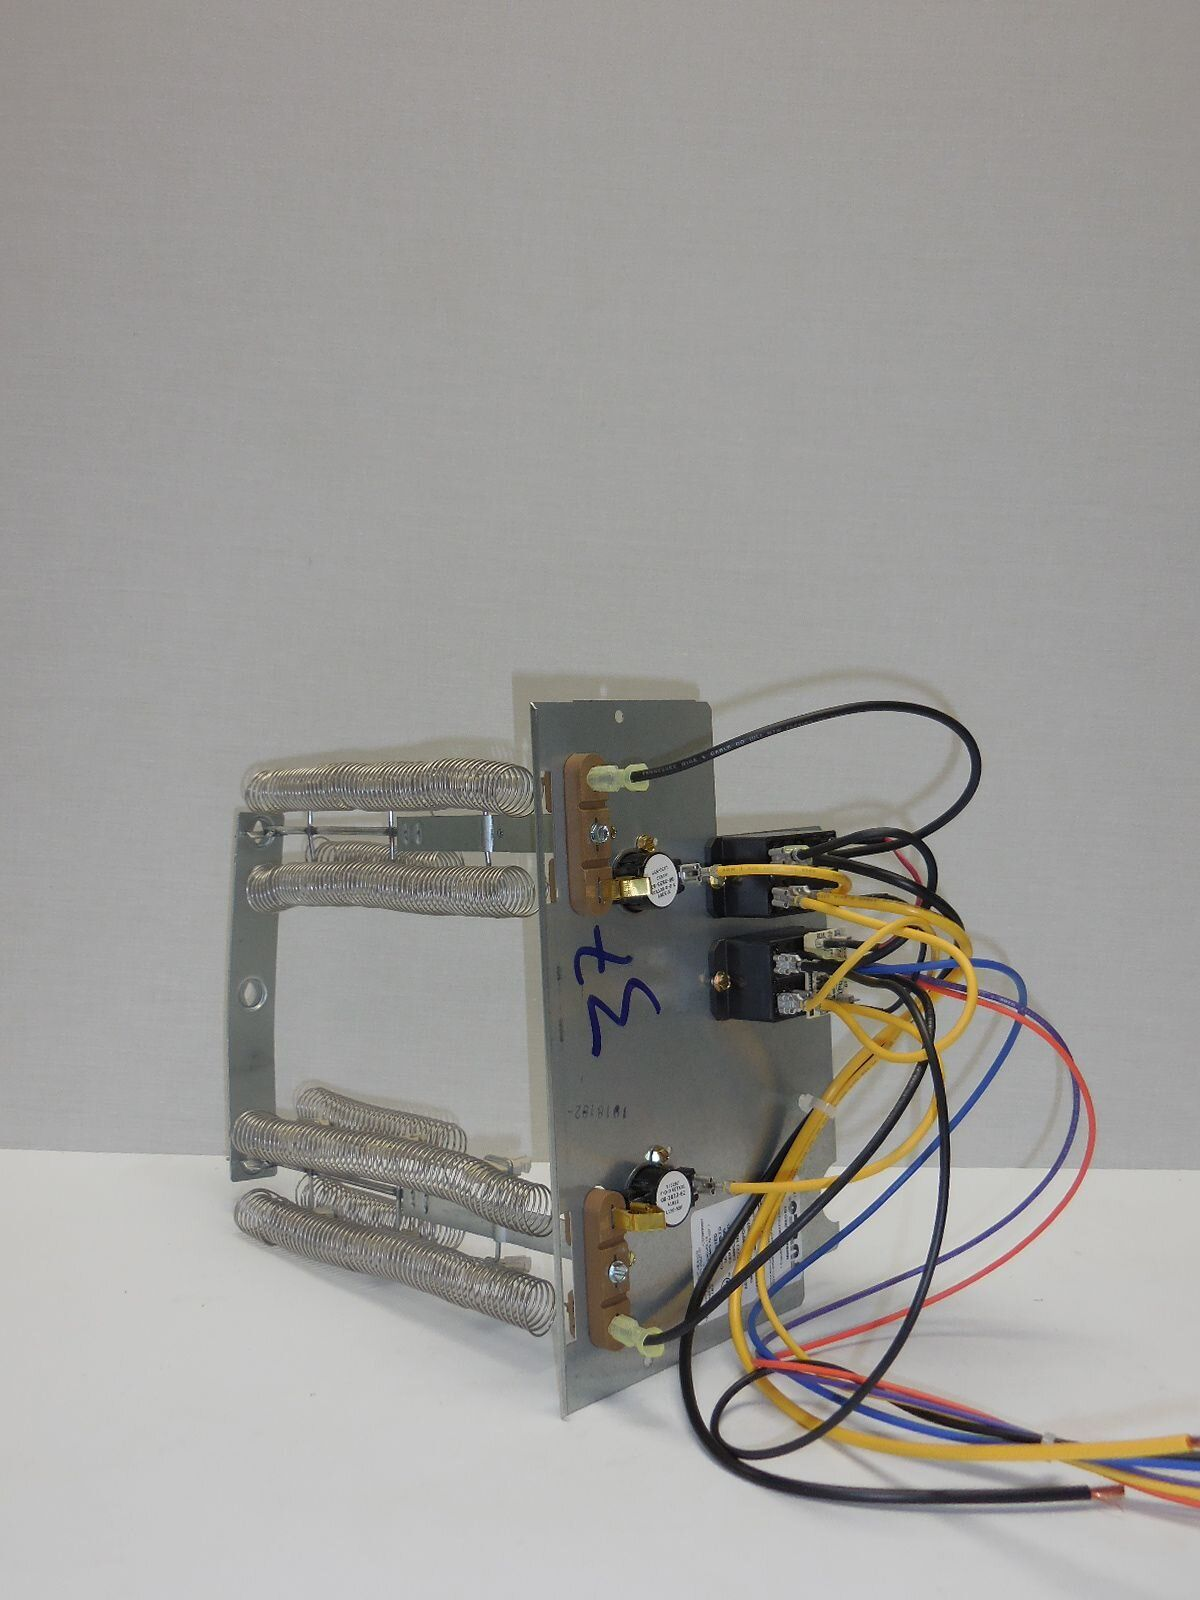 CE0901N10T 10 kW Electric Heater (2301) — DIY PARTS in